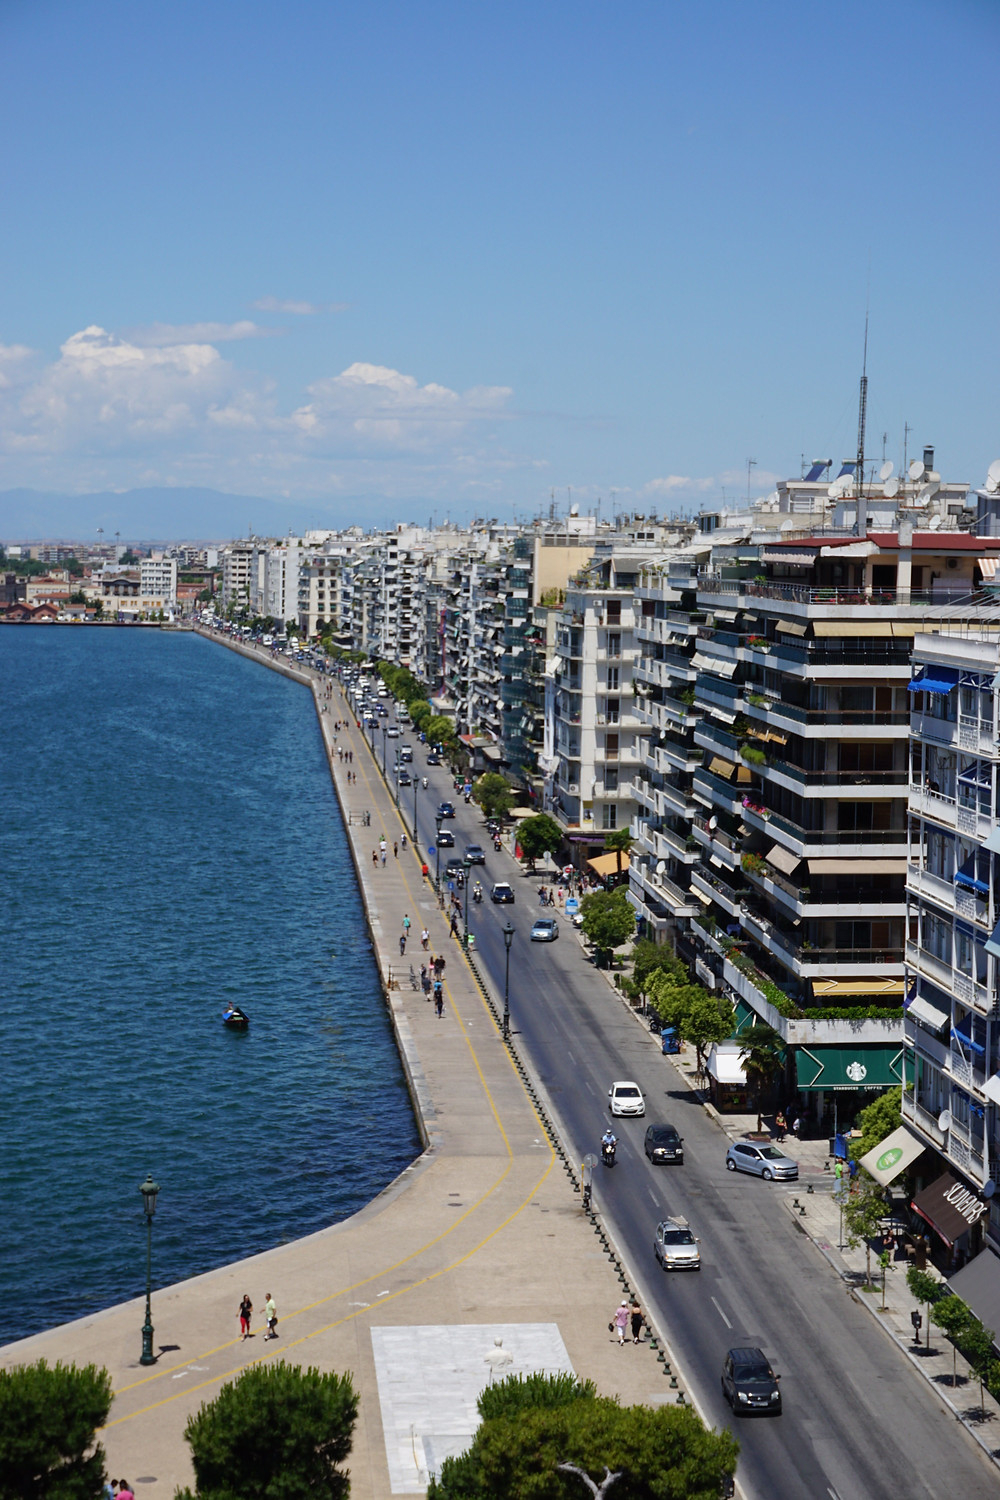 Waterfront promenade as seen from The White Tower - Thessaloniki - Greece